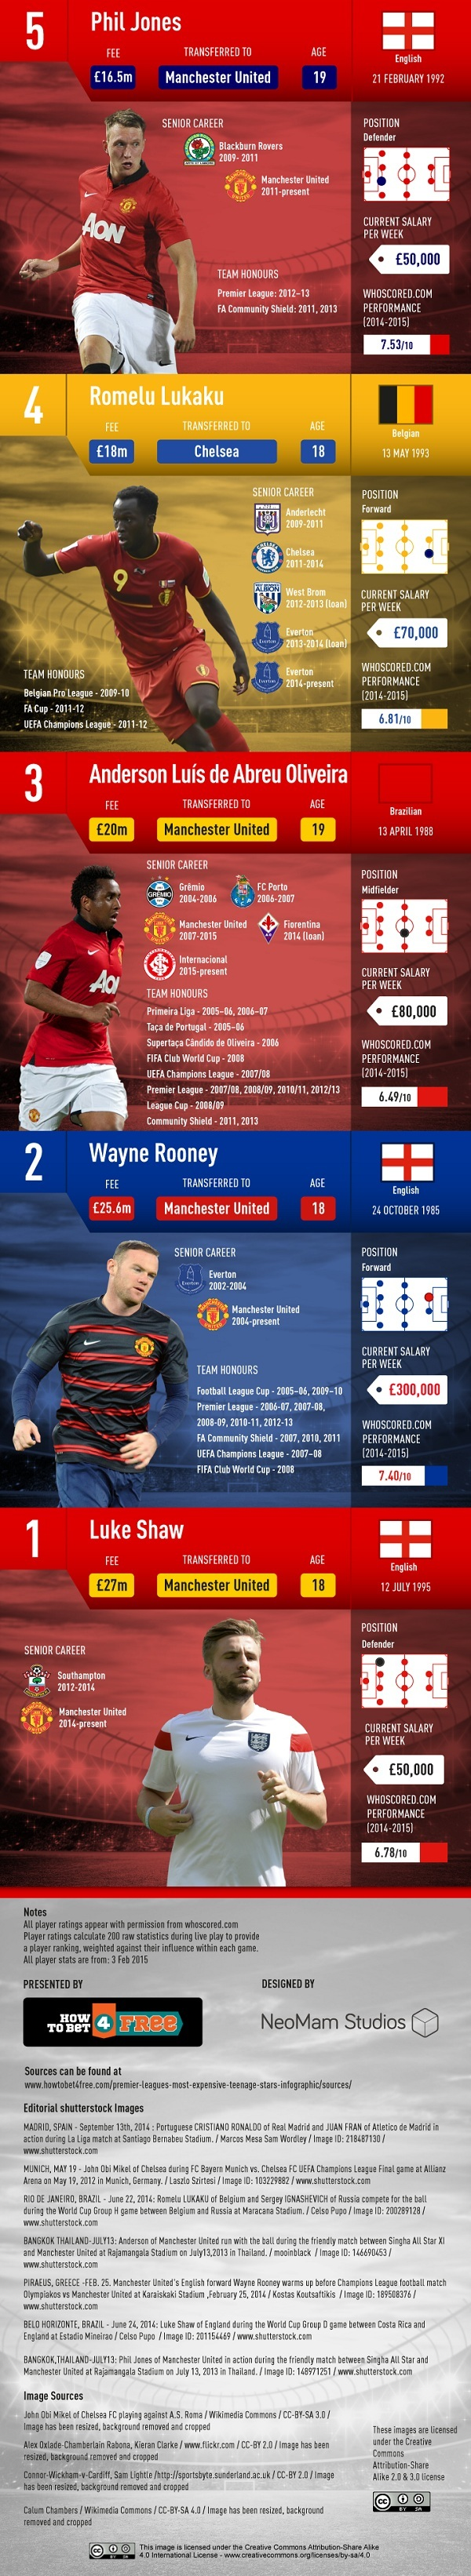 10 most expensive EPL transfers - 2